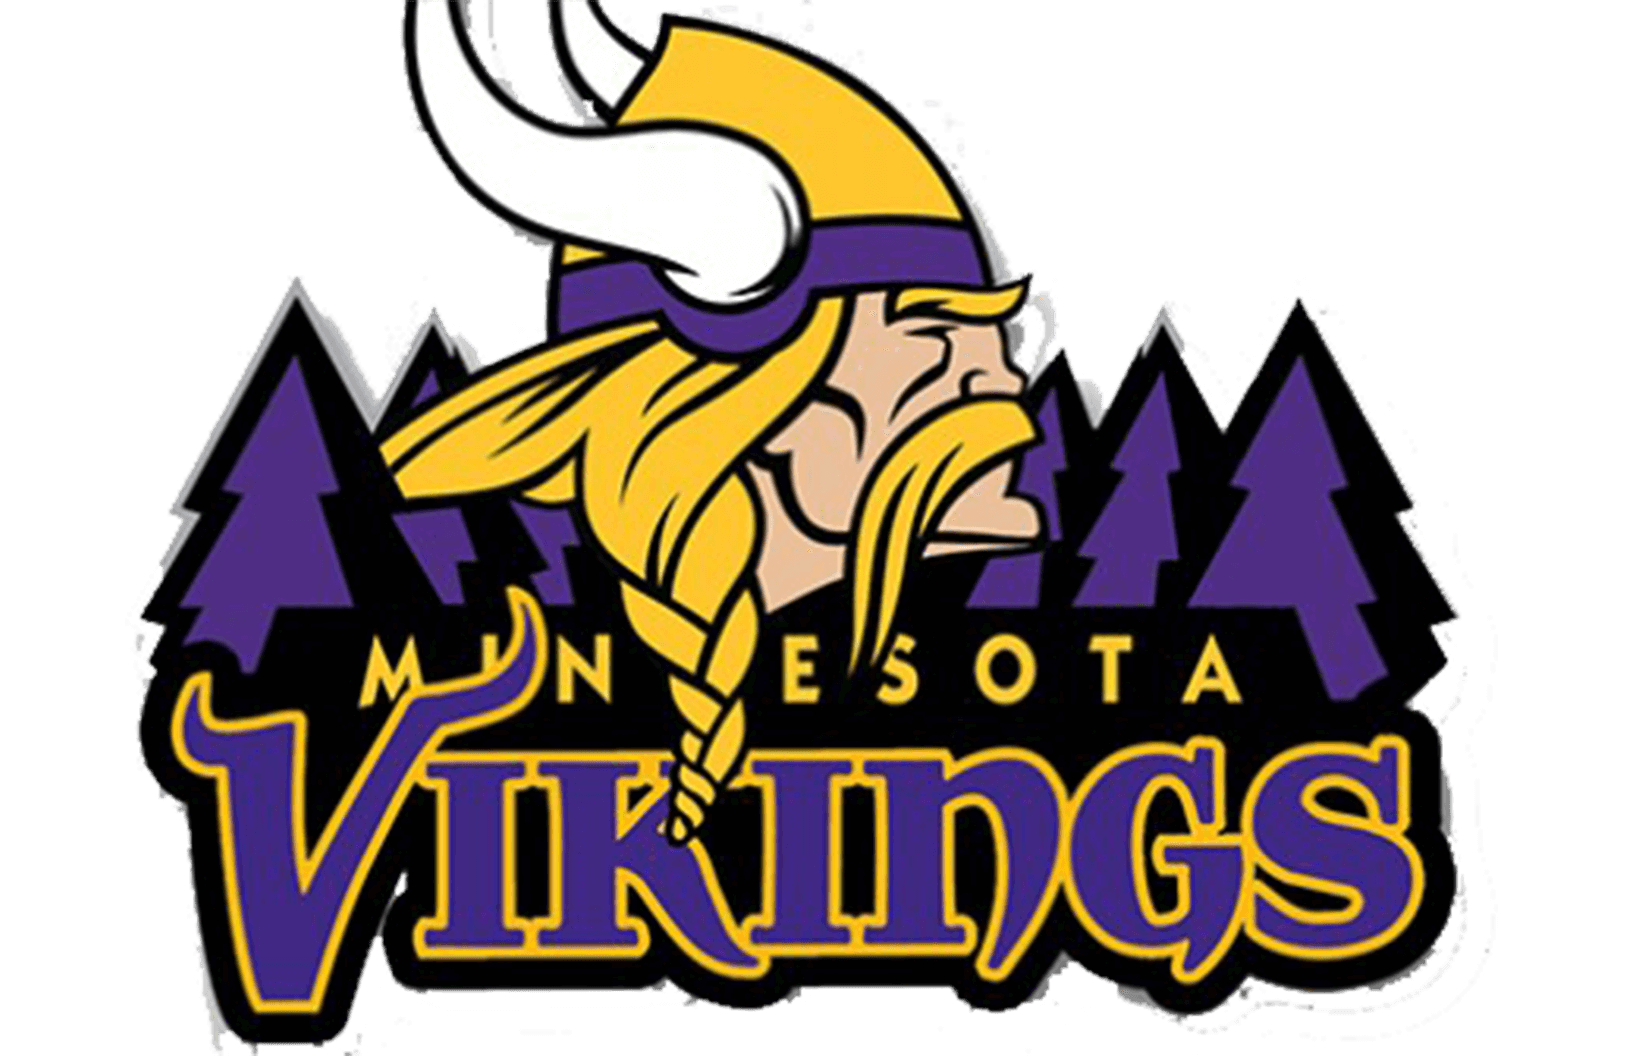 Minnesota Vikings Png - Minnesota Vikings Png (100+ images in Collection) Page 2